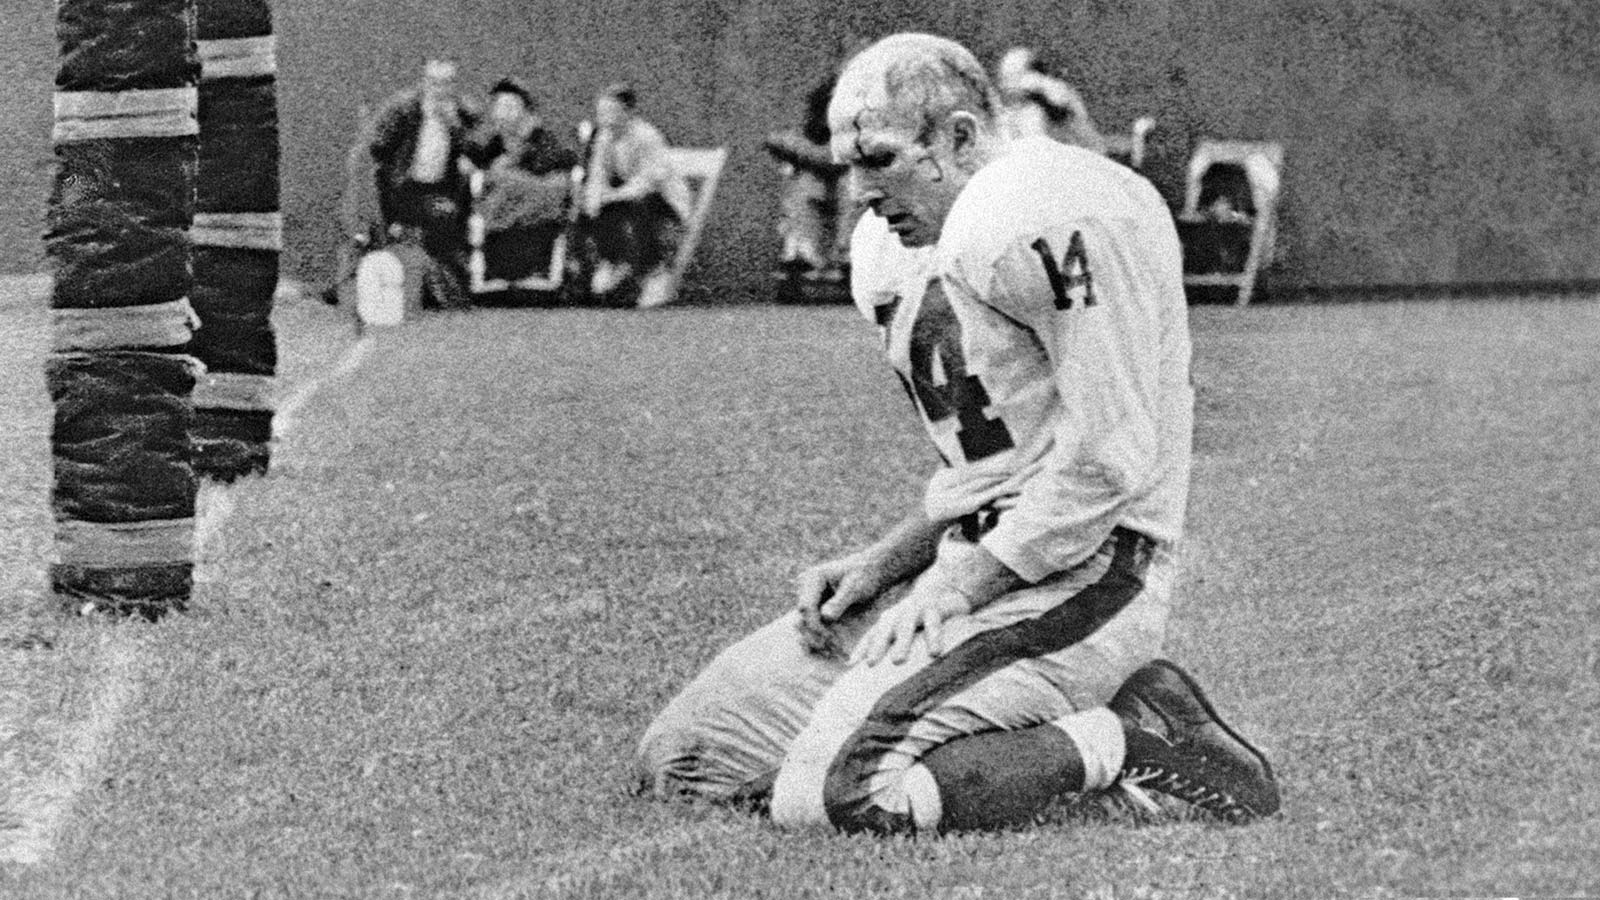 Football Legend, Hall of Famer YA Tittle Dies, 90